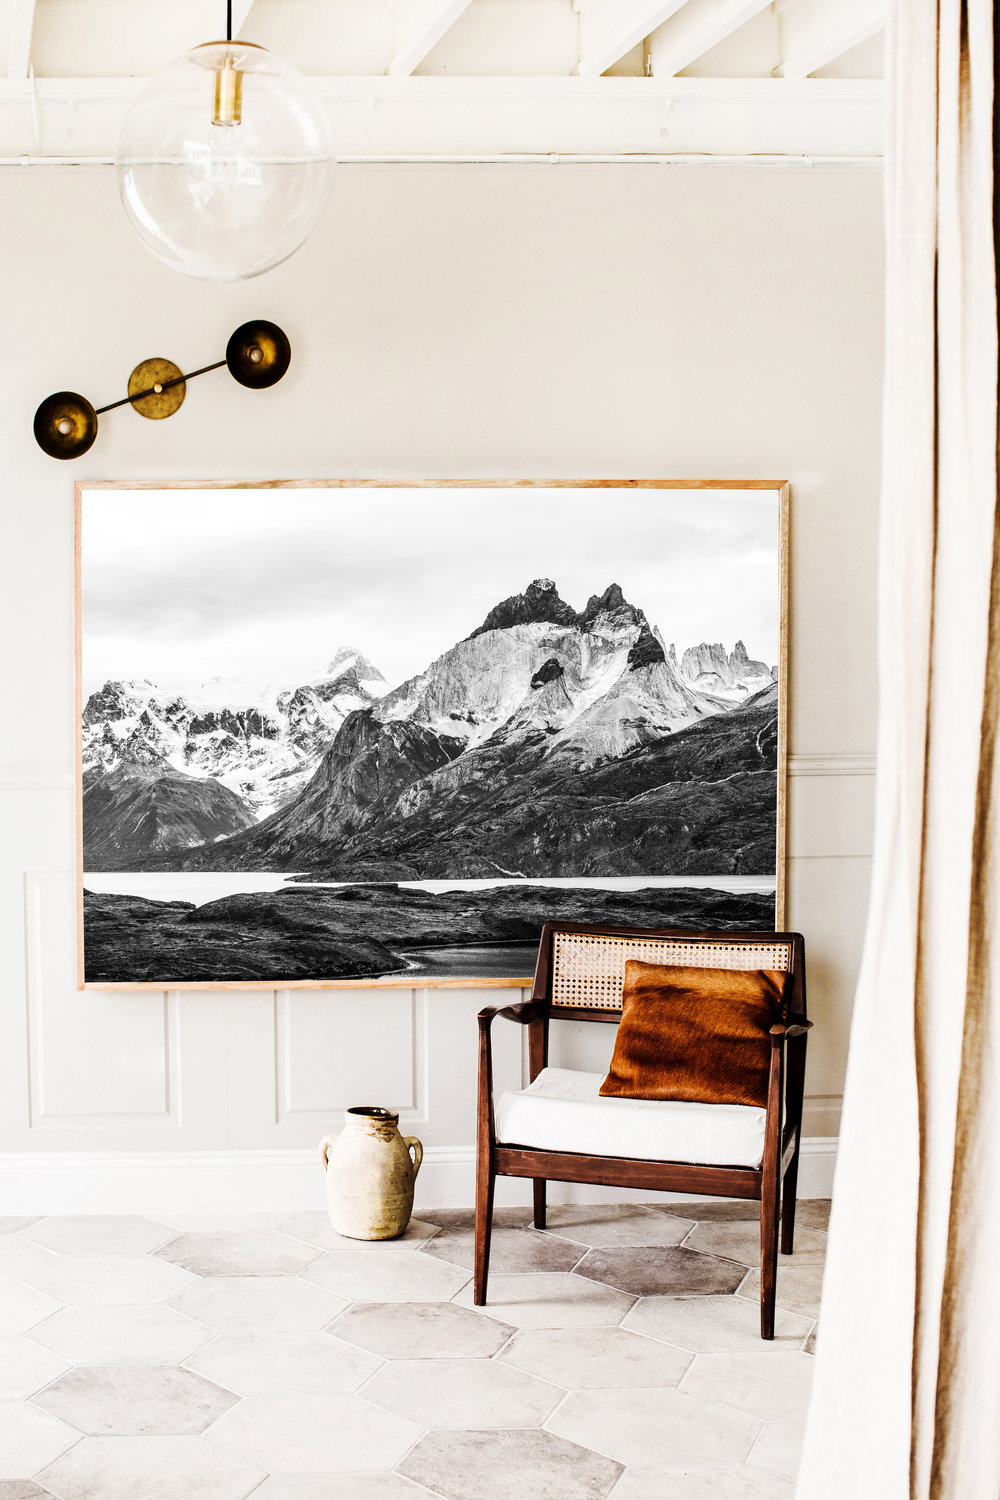 Patagonia Wilderness  Photographic print in Extra Large framed in Tasmanian Oak in Kara Rosenlund 's new Extra Large size.